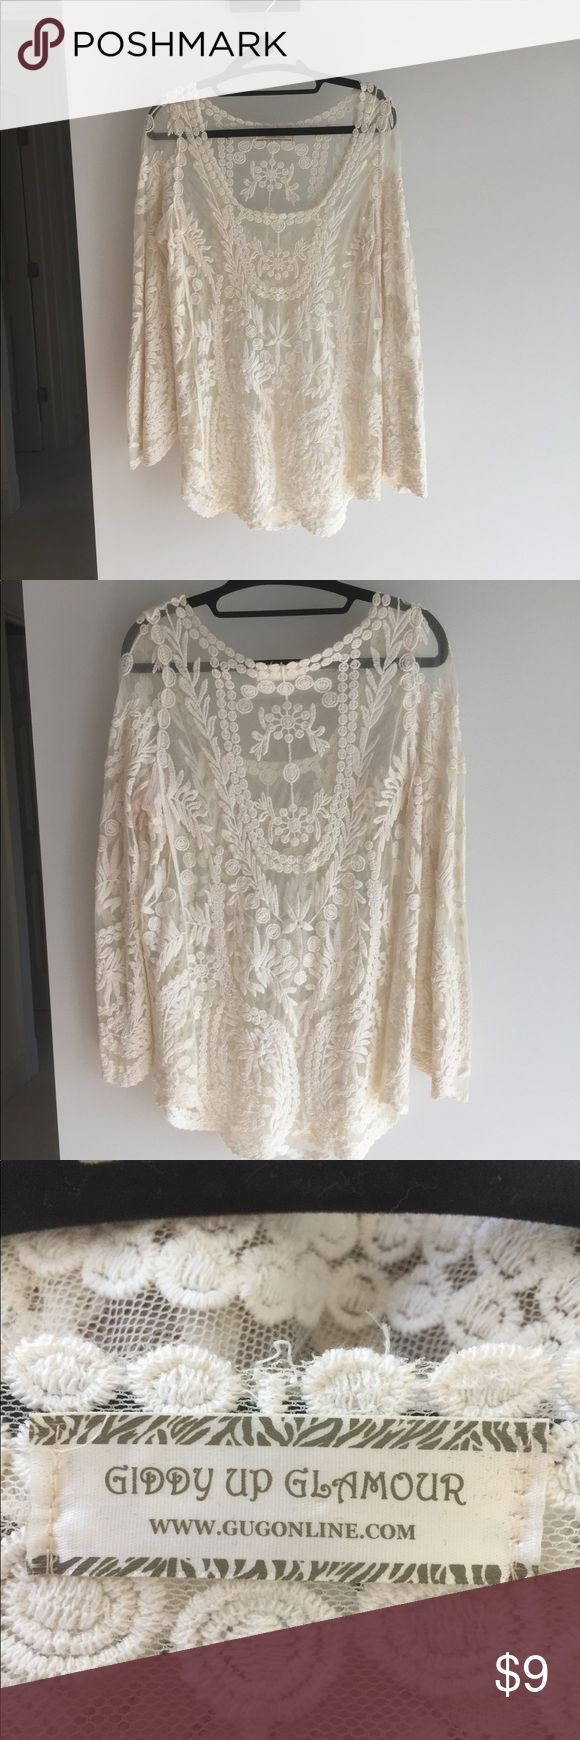 Cream Top Embroidered Giddy Up Glamour, Size S, excellent condition.  Would also fit a M. 100 percent cotton. Tops Blouses